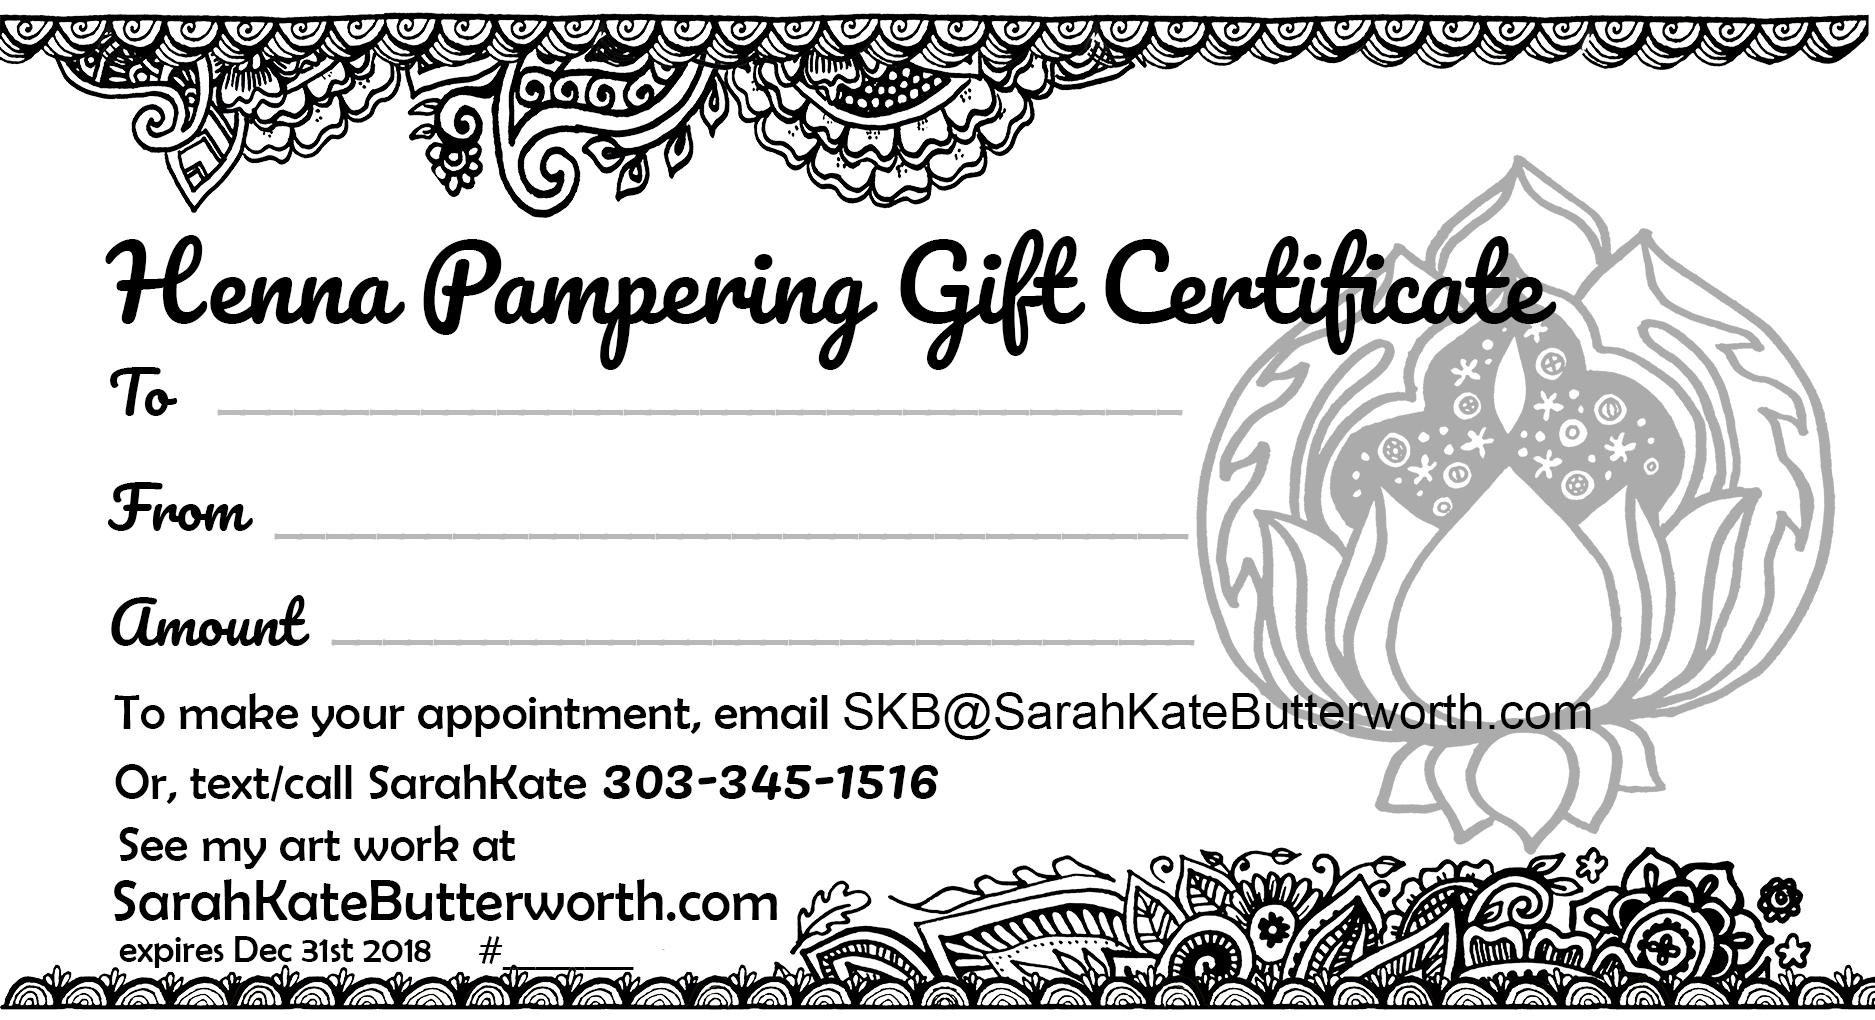 SarahKates gifts of Henna for women